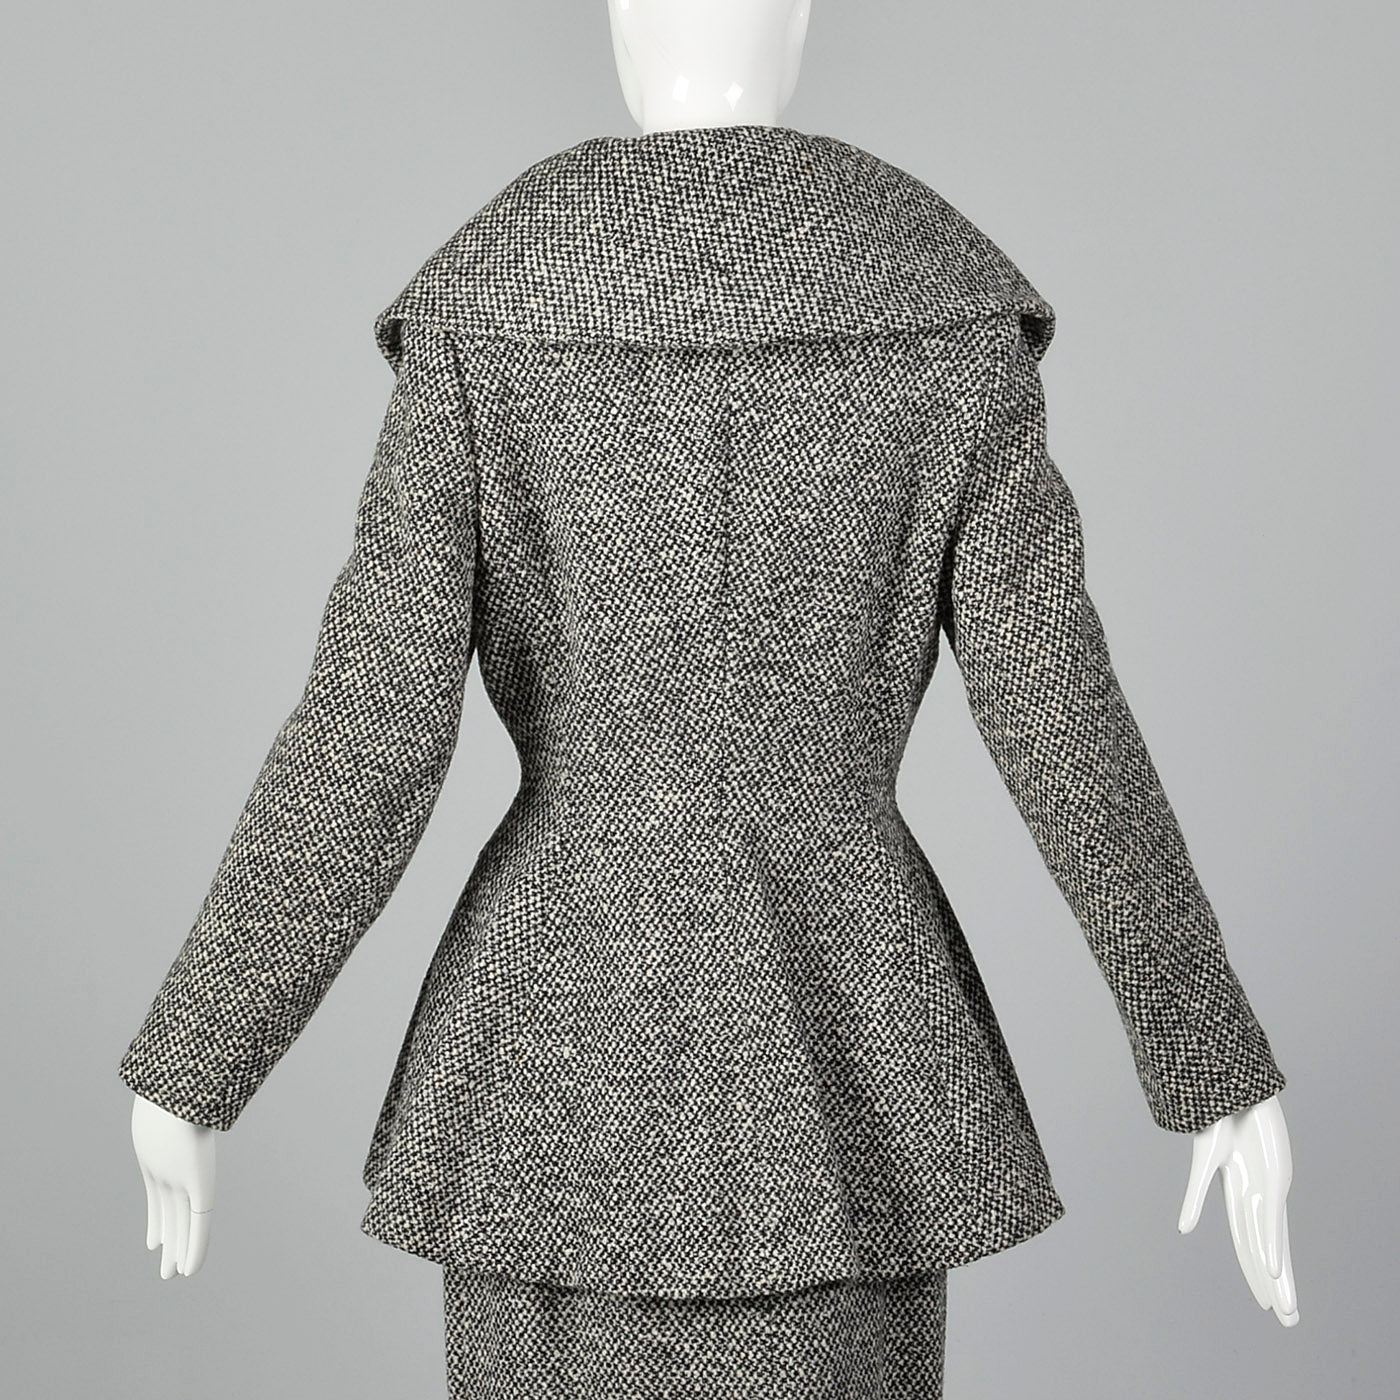 1950s Wool Tweed Skirt Suit with Sculptable Portrait Collar